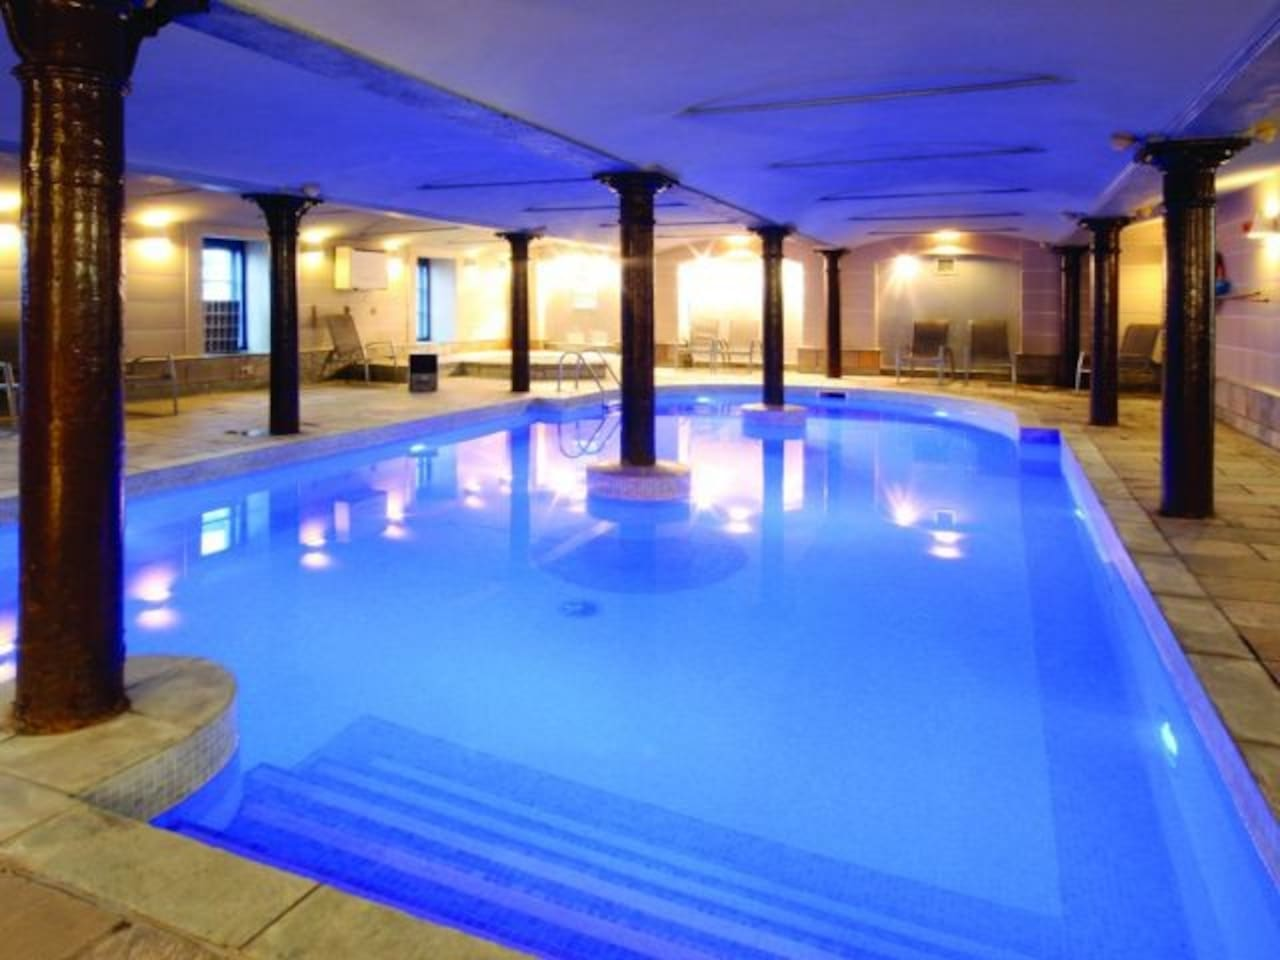 Swimming pool, Sauna, Steamroom and Spa all included